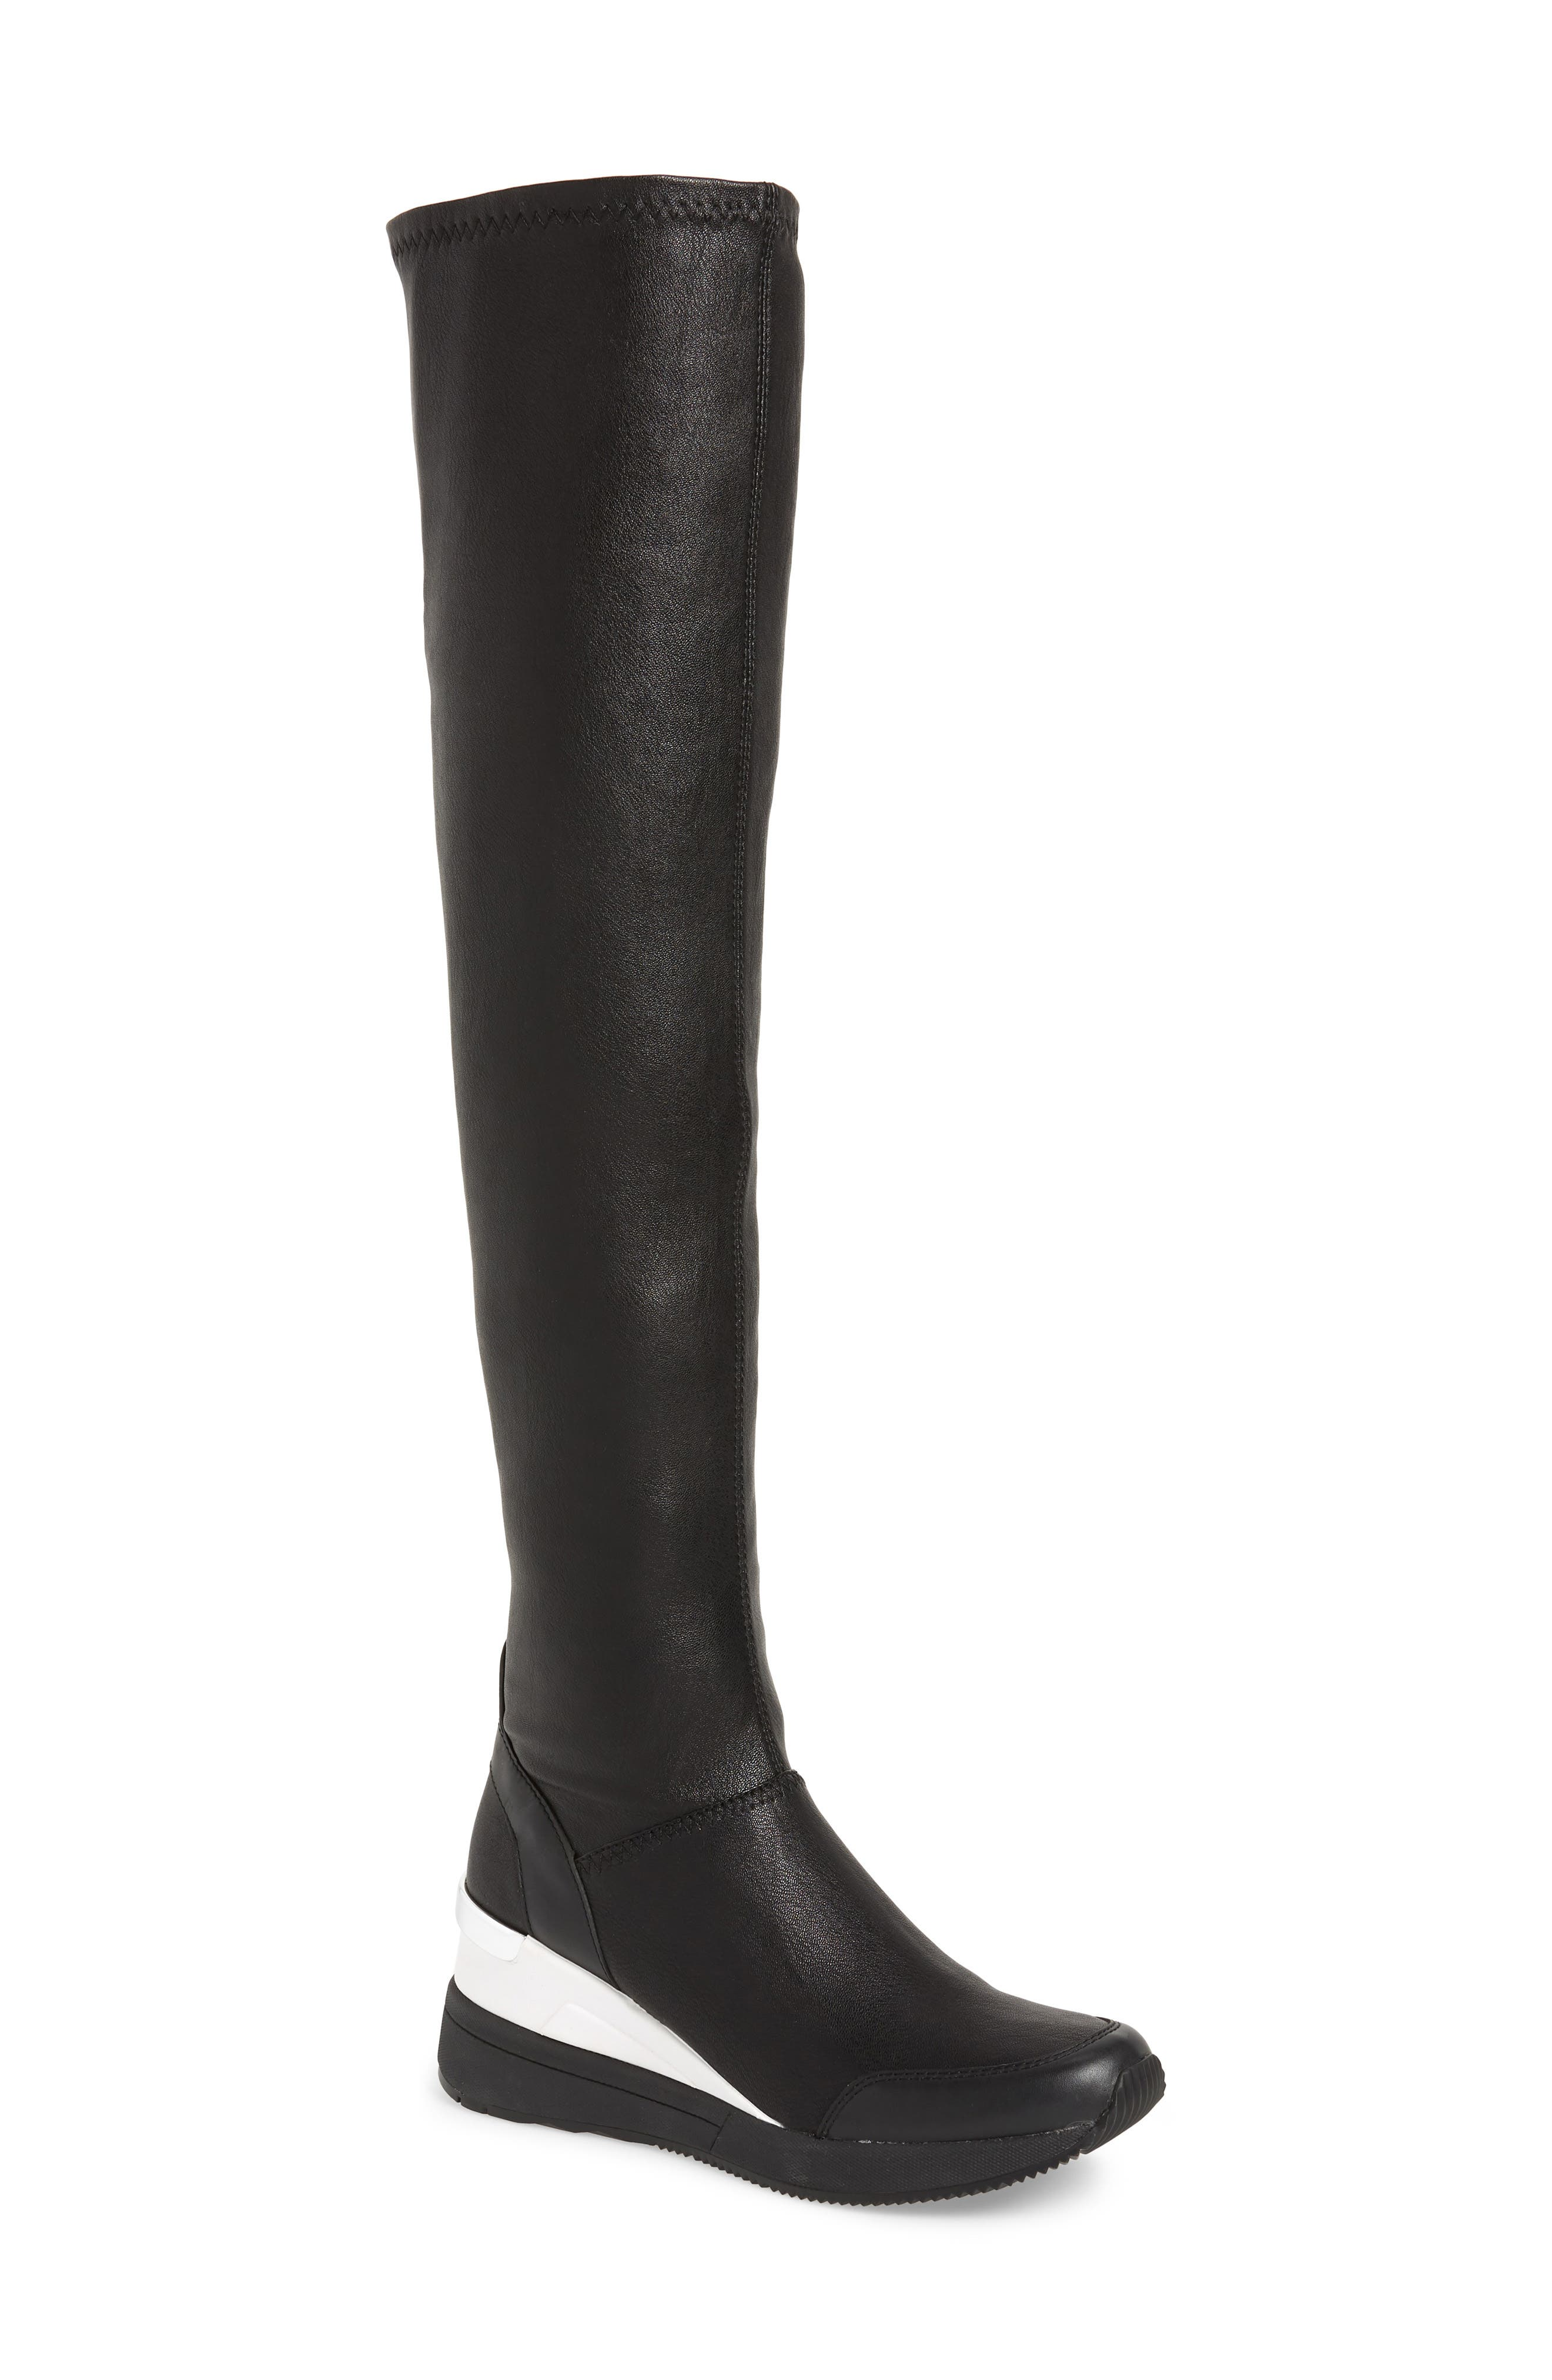 Tipton Wedge Over the Knee Rain Boot,                             Main thumbnail 1, color,                             BLACK FAUX LEATHER